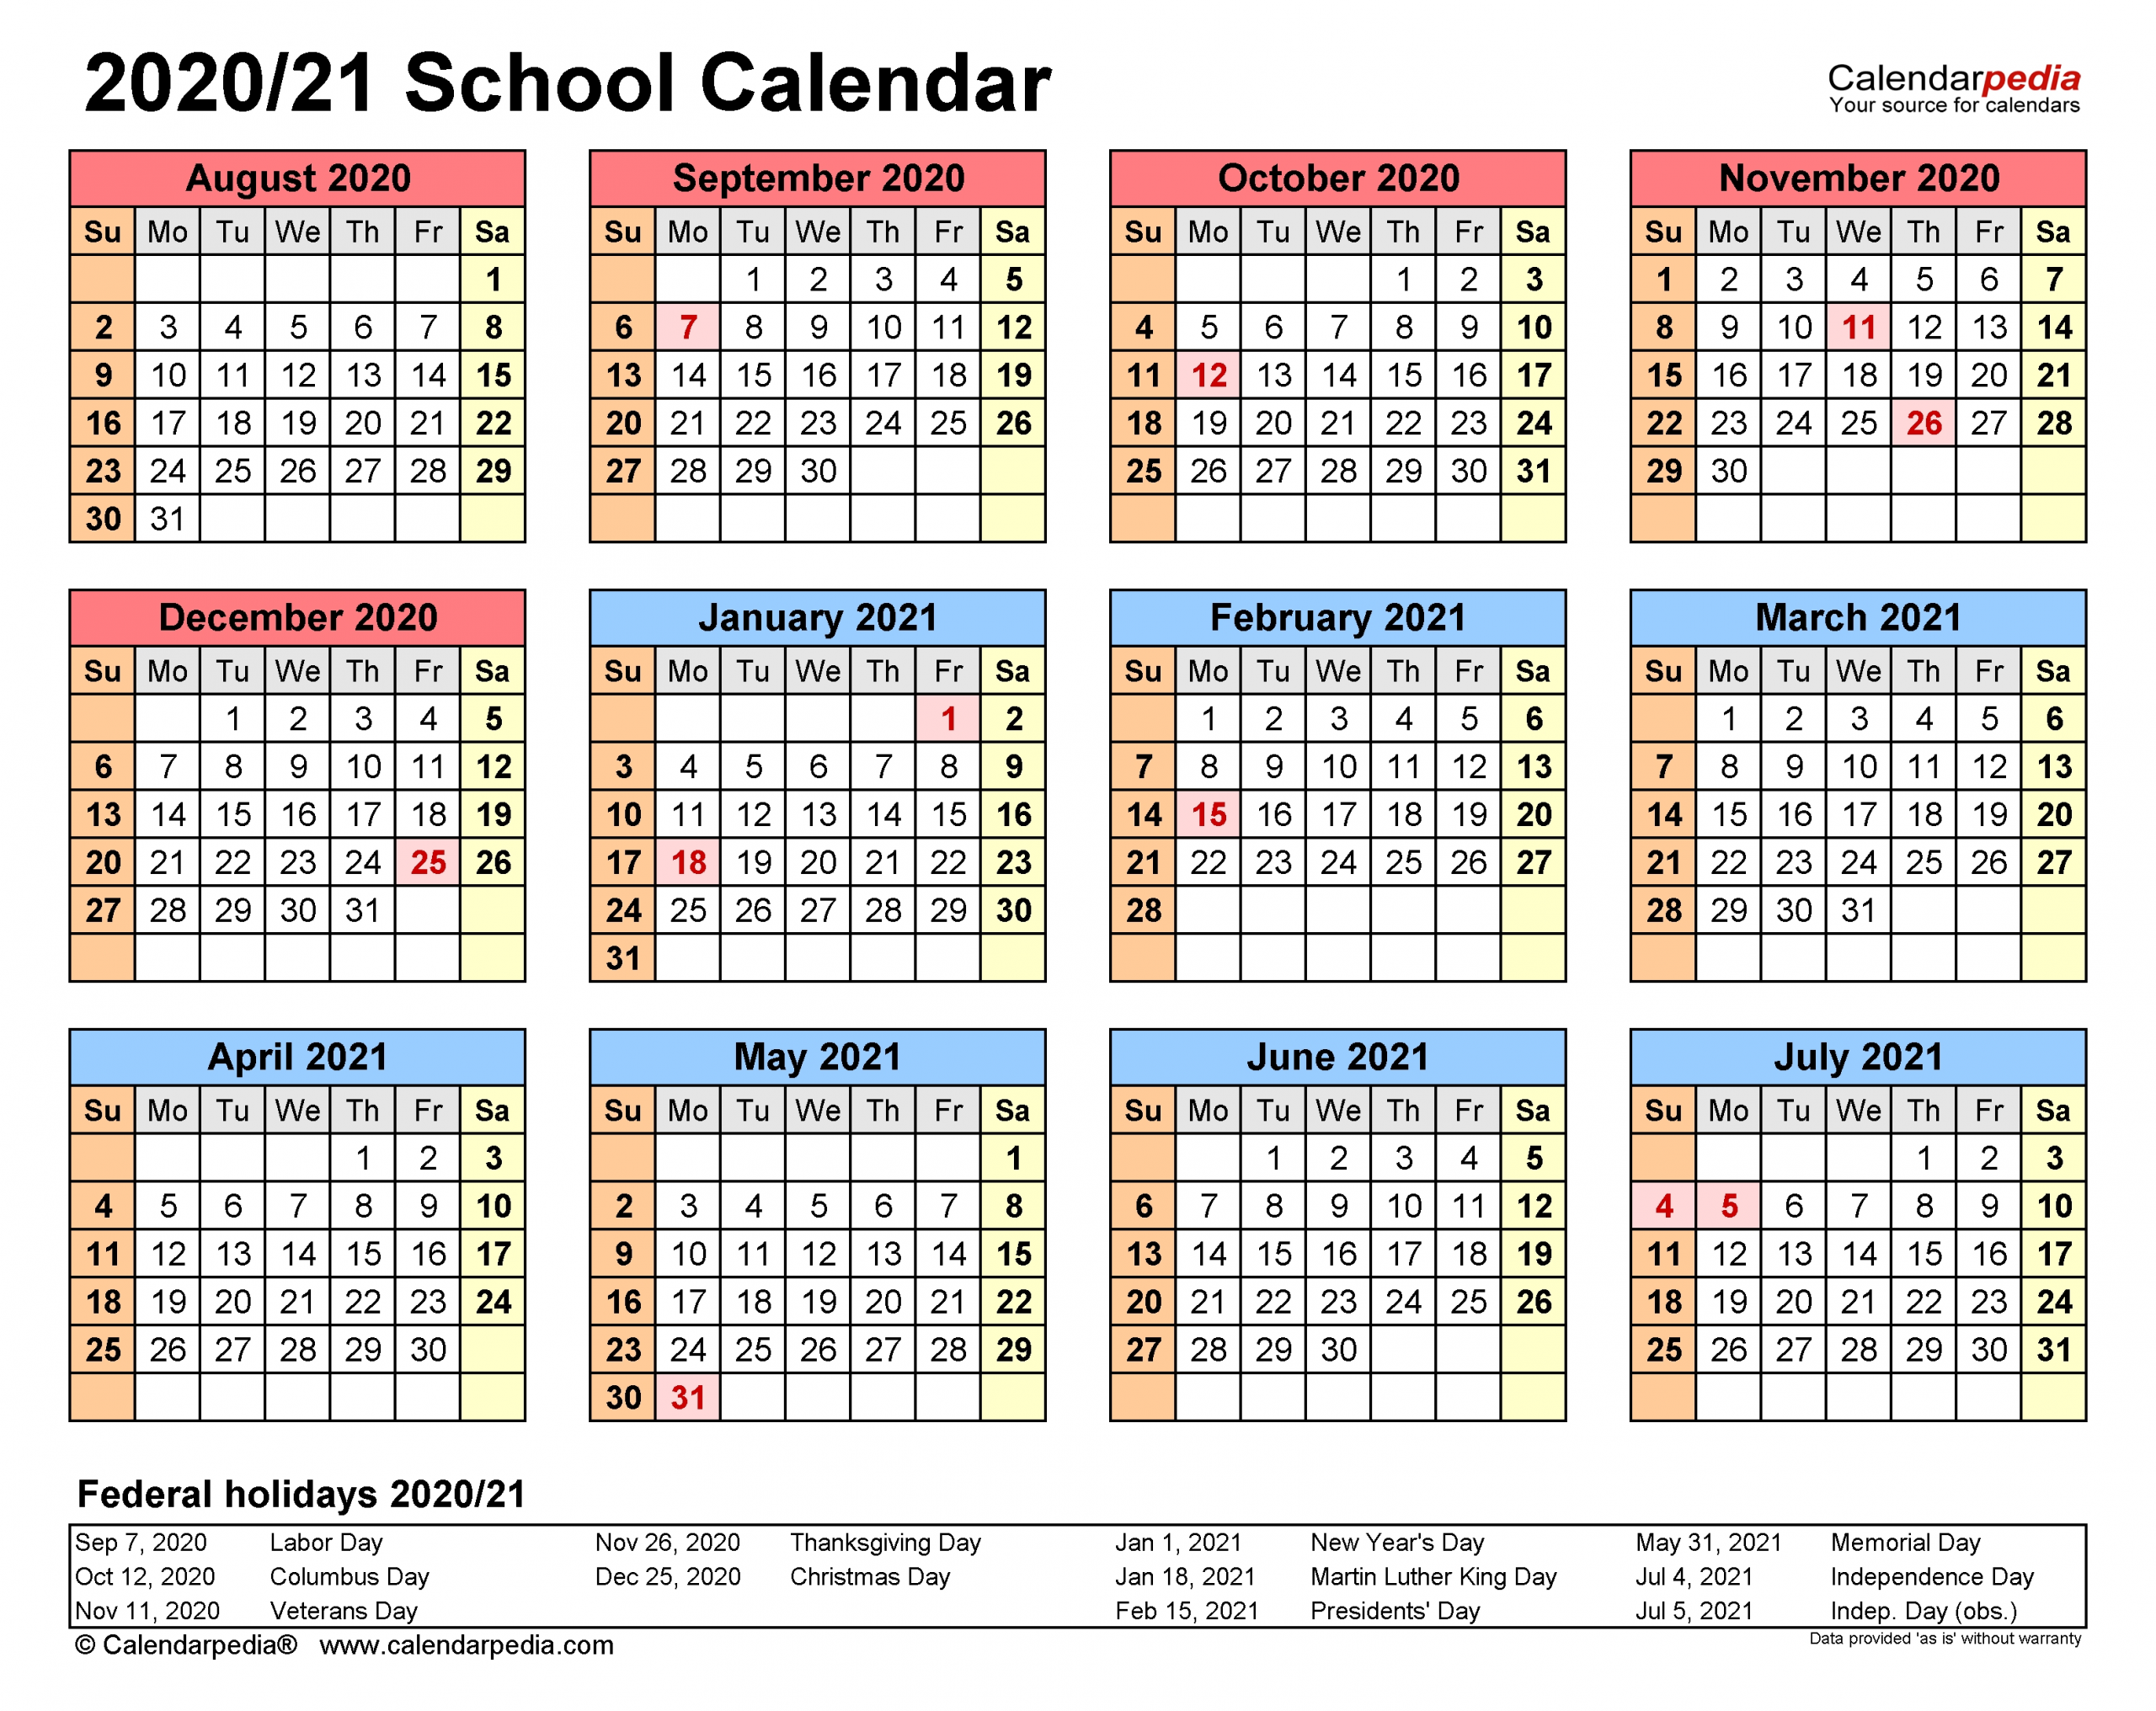 School Calendars 2020/2021 - Free Printable Word Templates